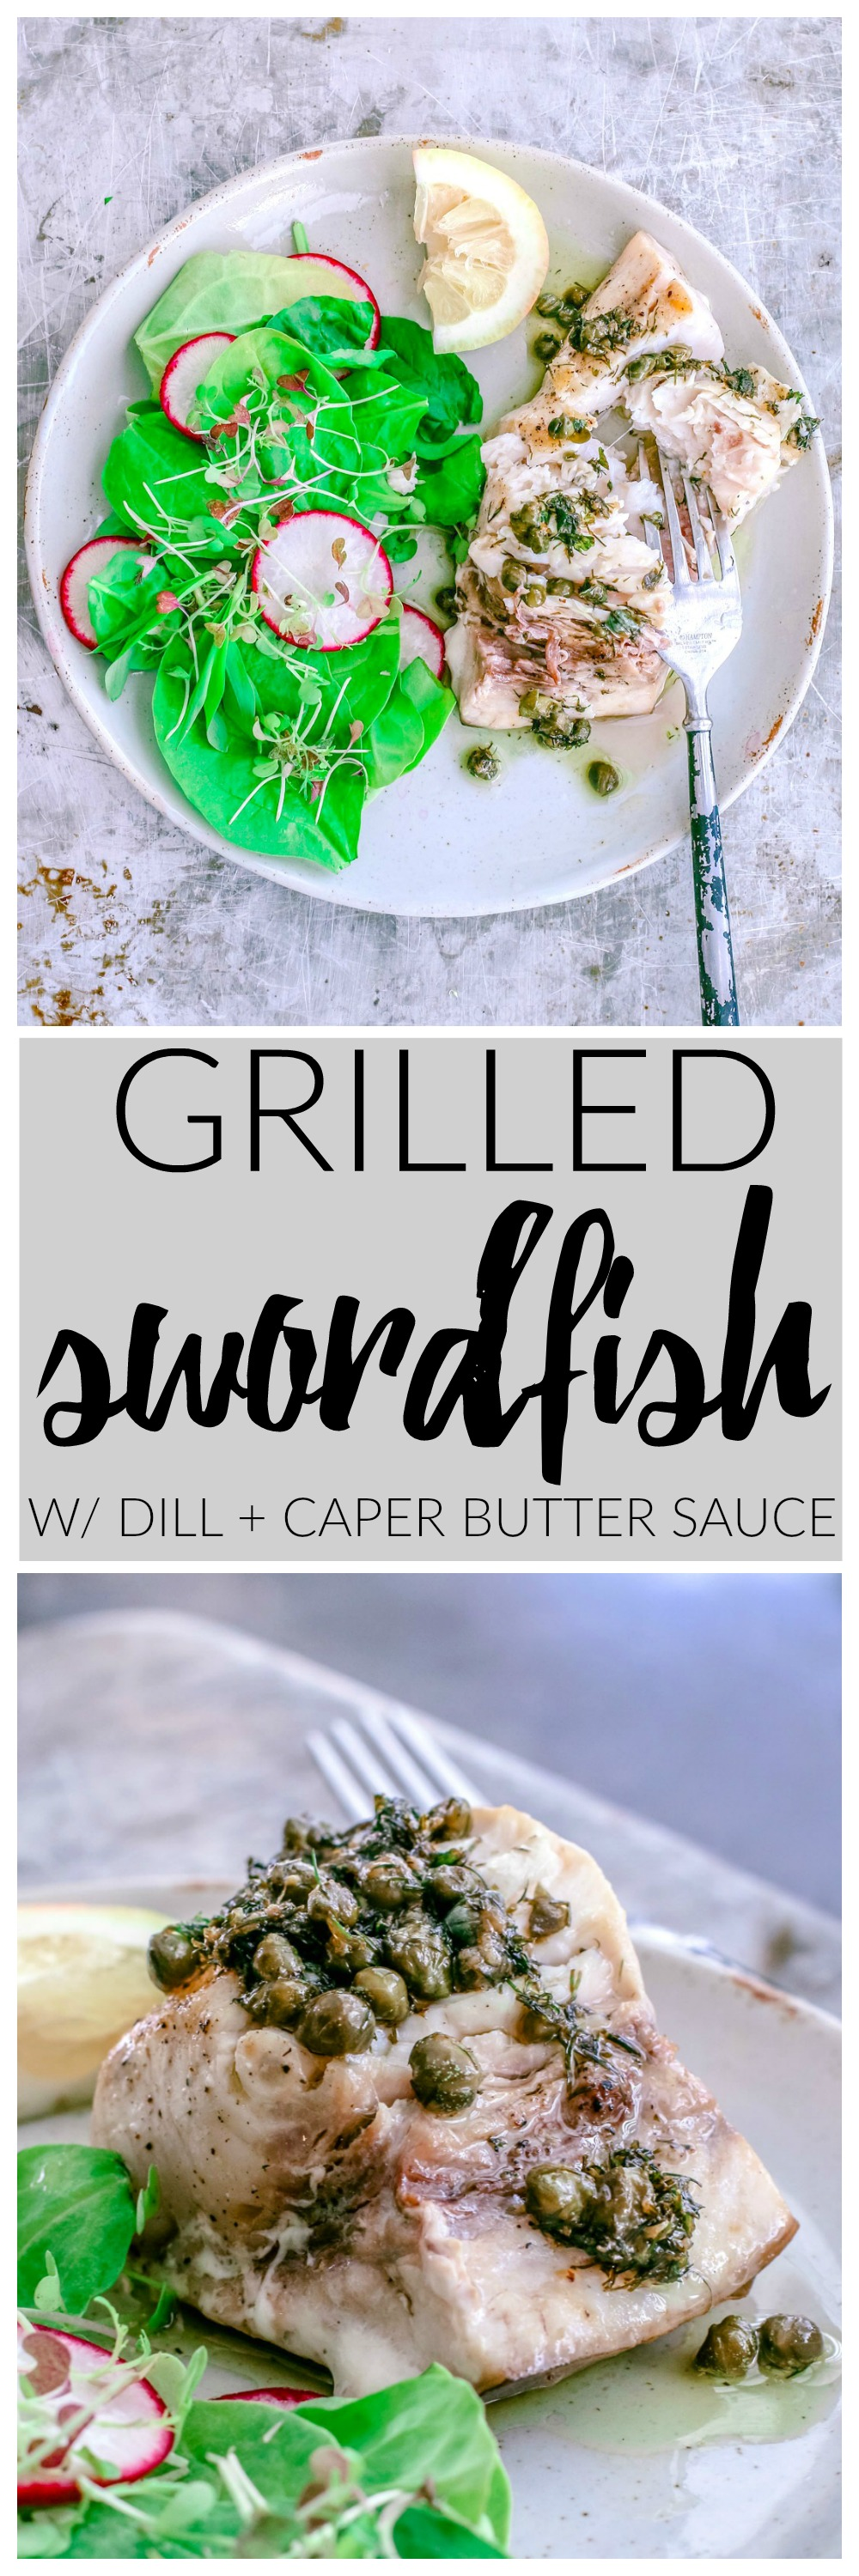 Grilled Swordfish With Dill and Caper Butter Sauce | Killing Thyme